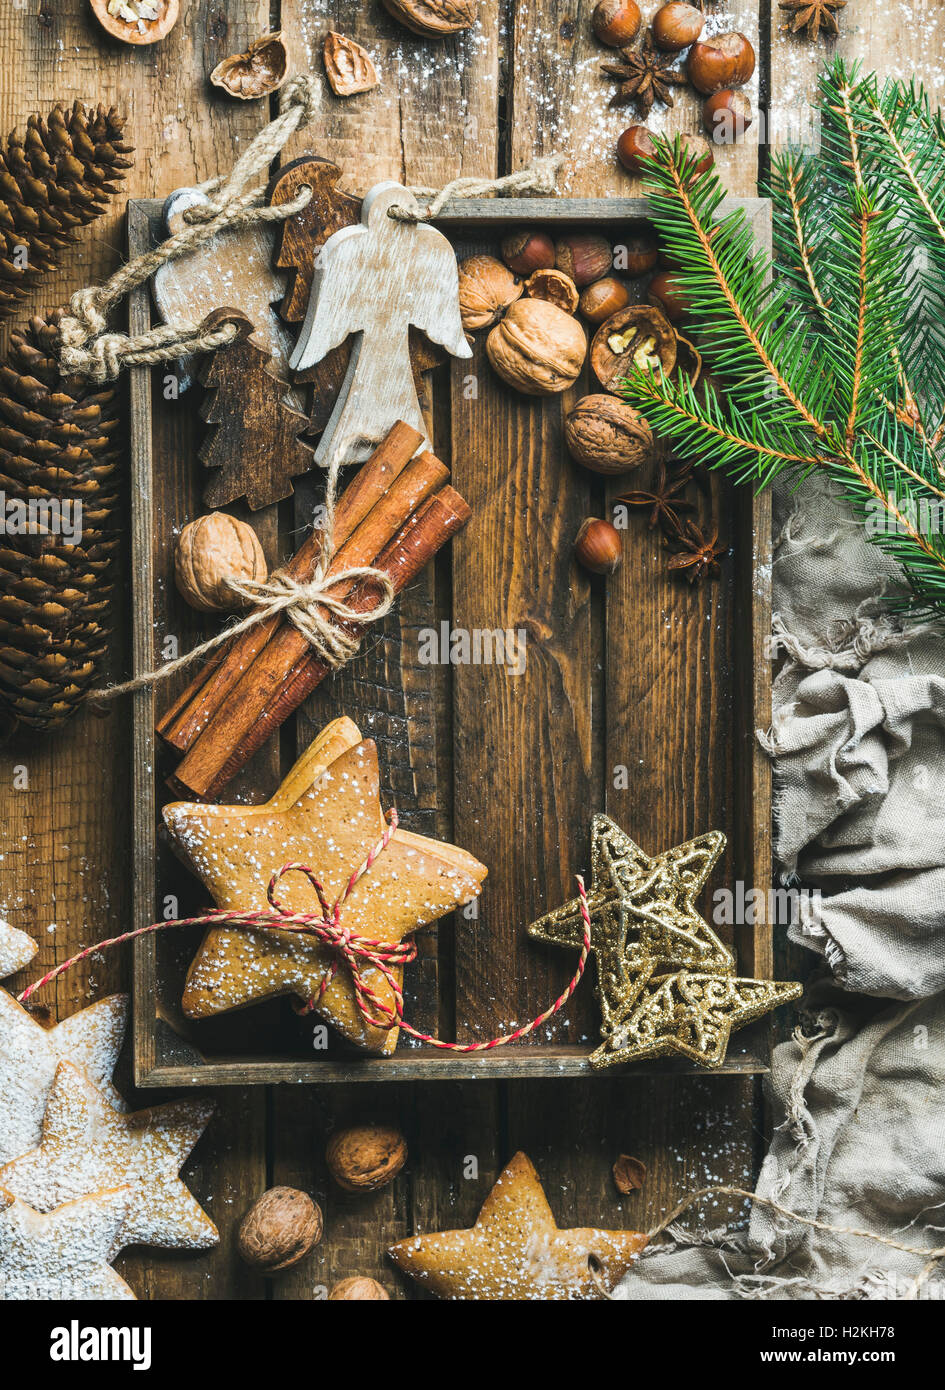 Gingerbread star shaped cookies, wooden angels, decorative stars, nuts and spices in wooden tray with sugar powder - Stock Image